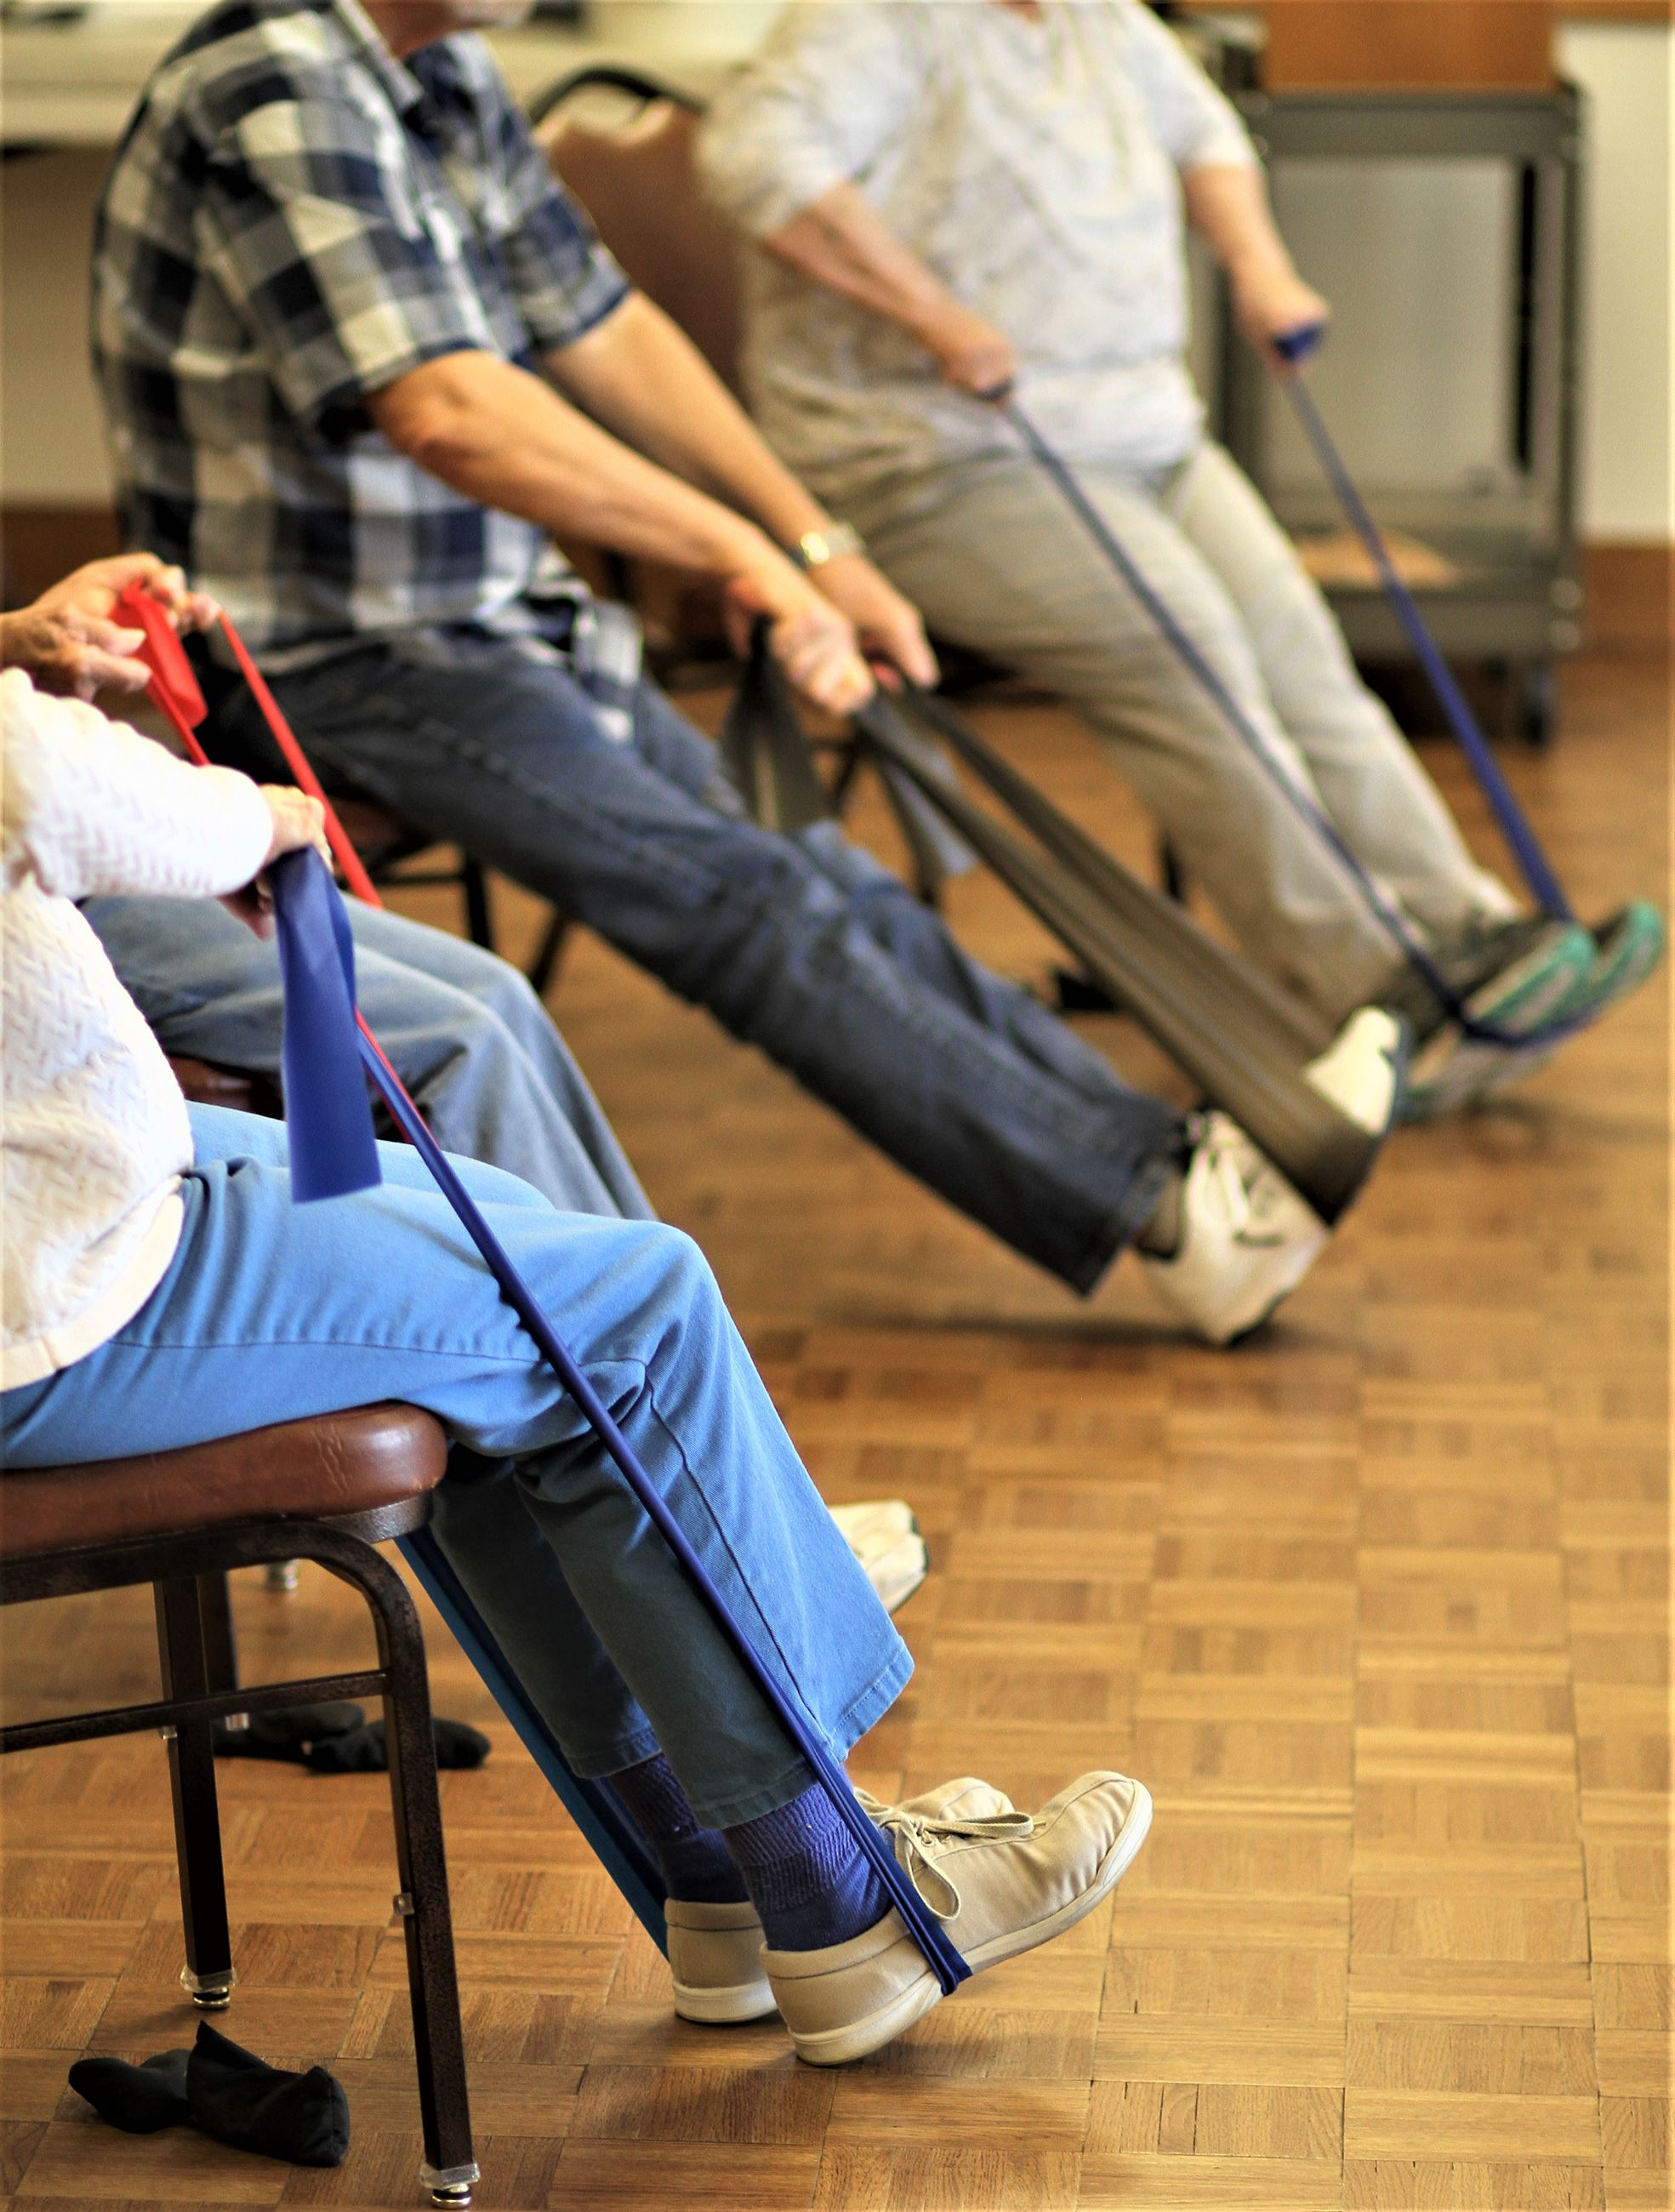 Stretch-n-Tone classes are available at the Carl Gipson Senior Center